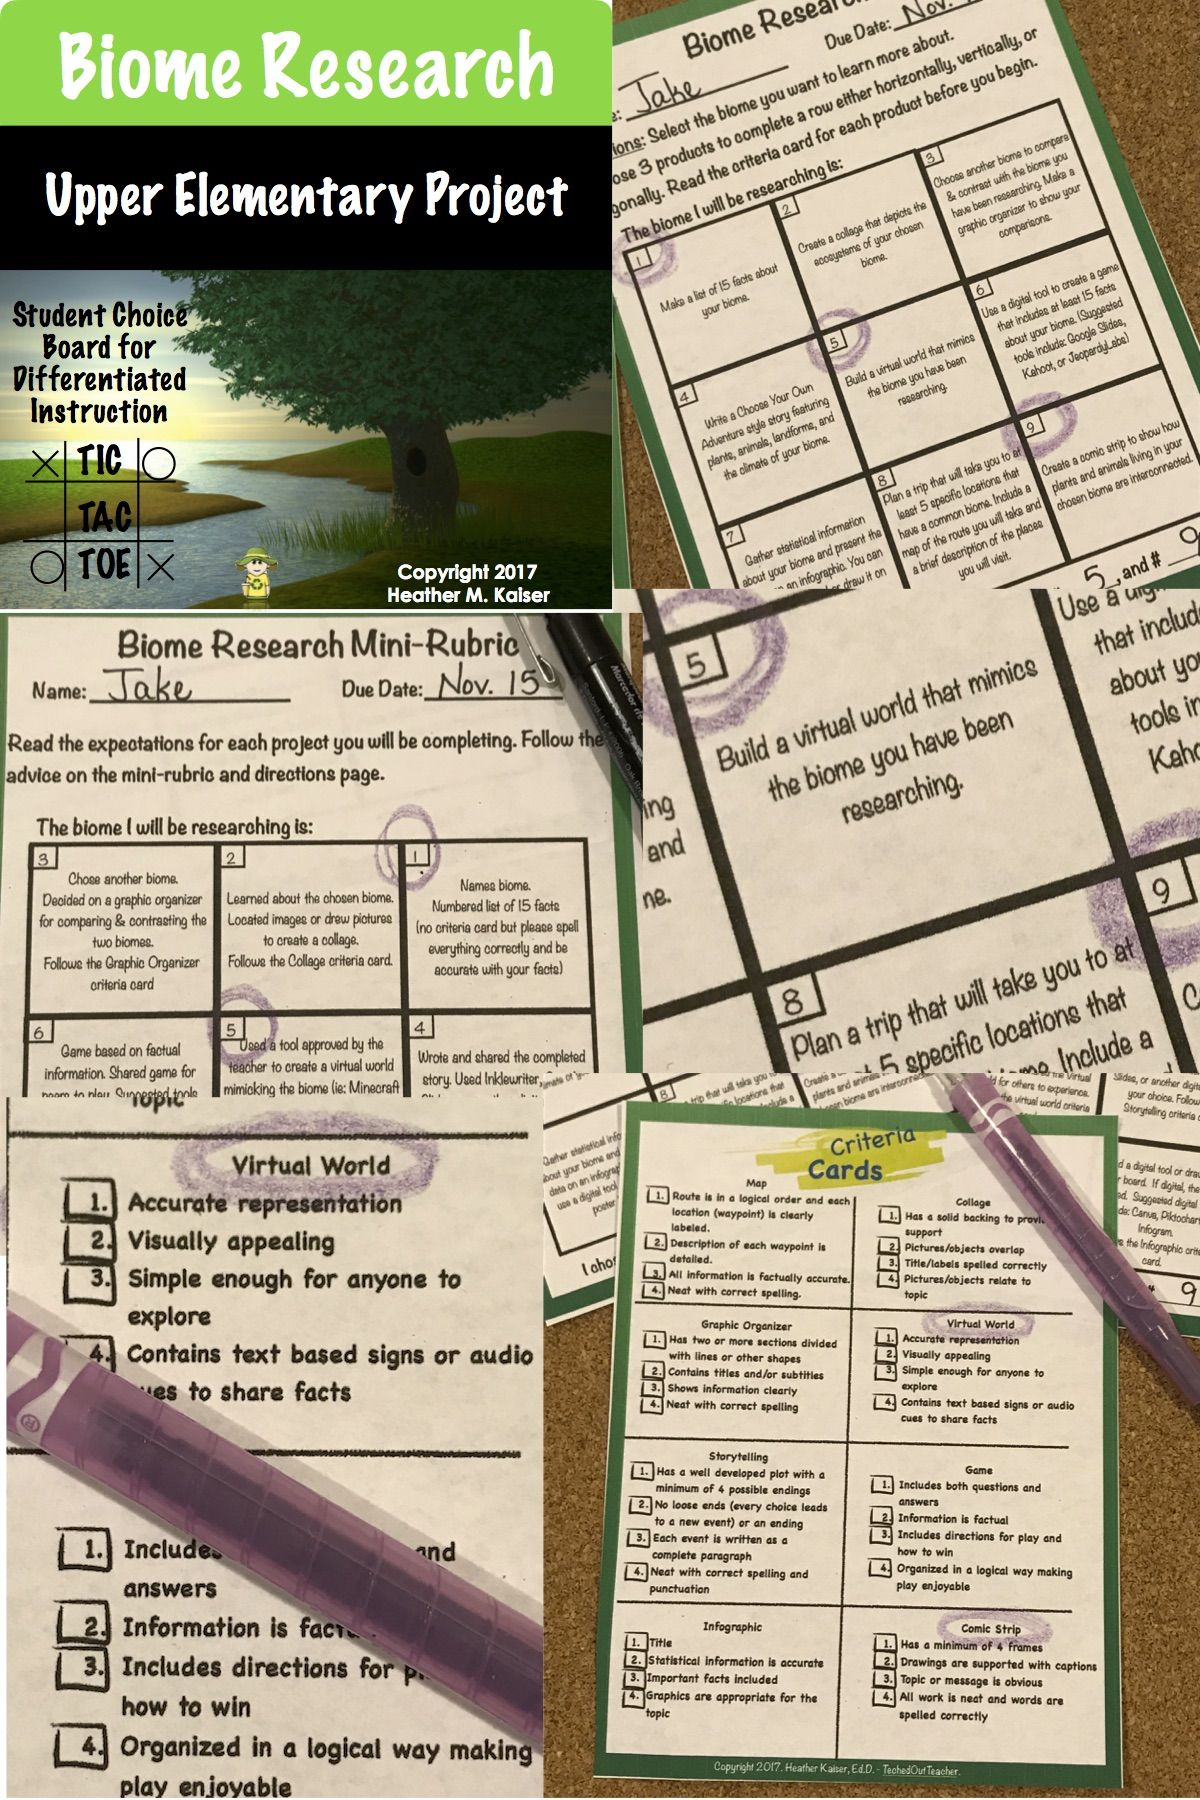 Biome Research Tic Tac Toe Differentiated Learning Plan | Biomes ...